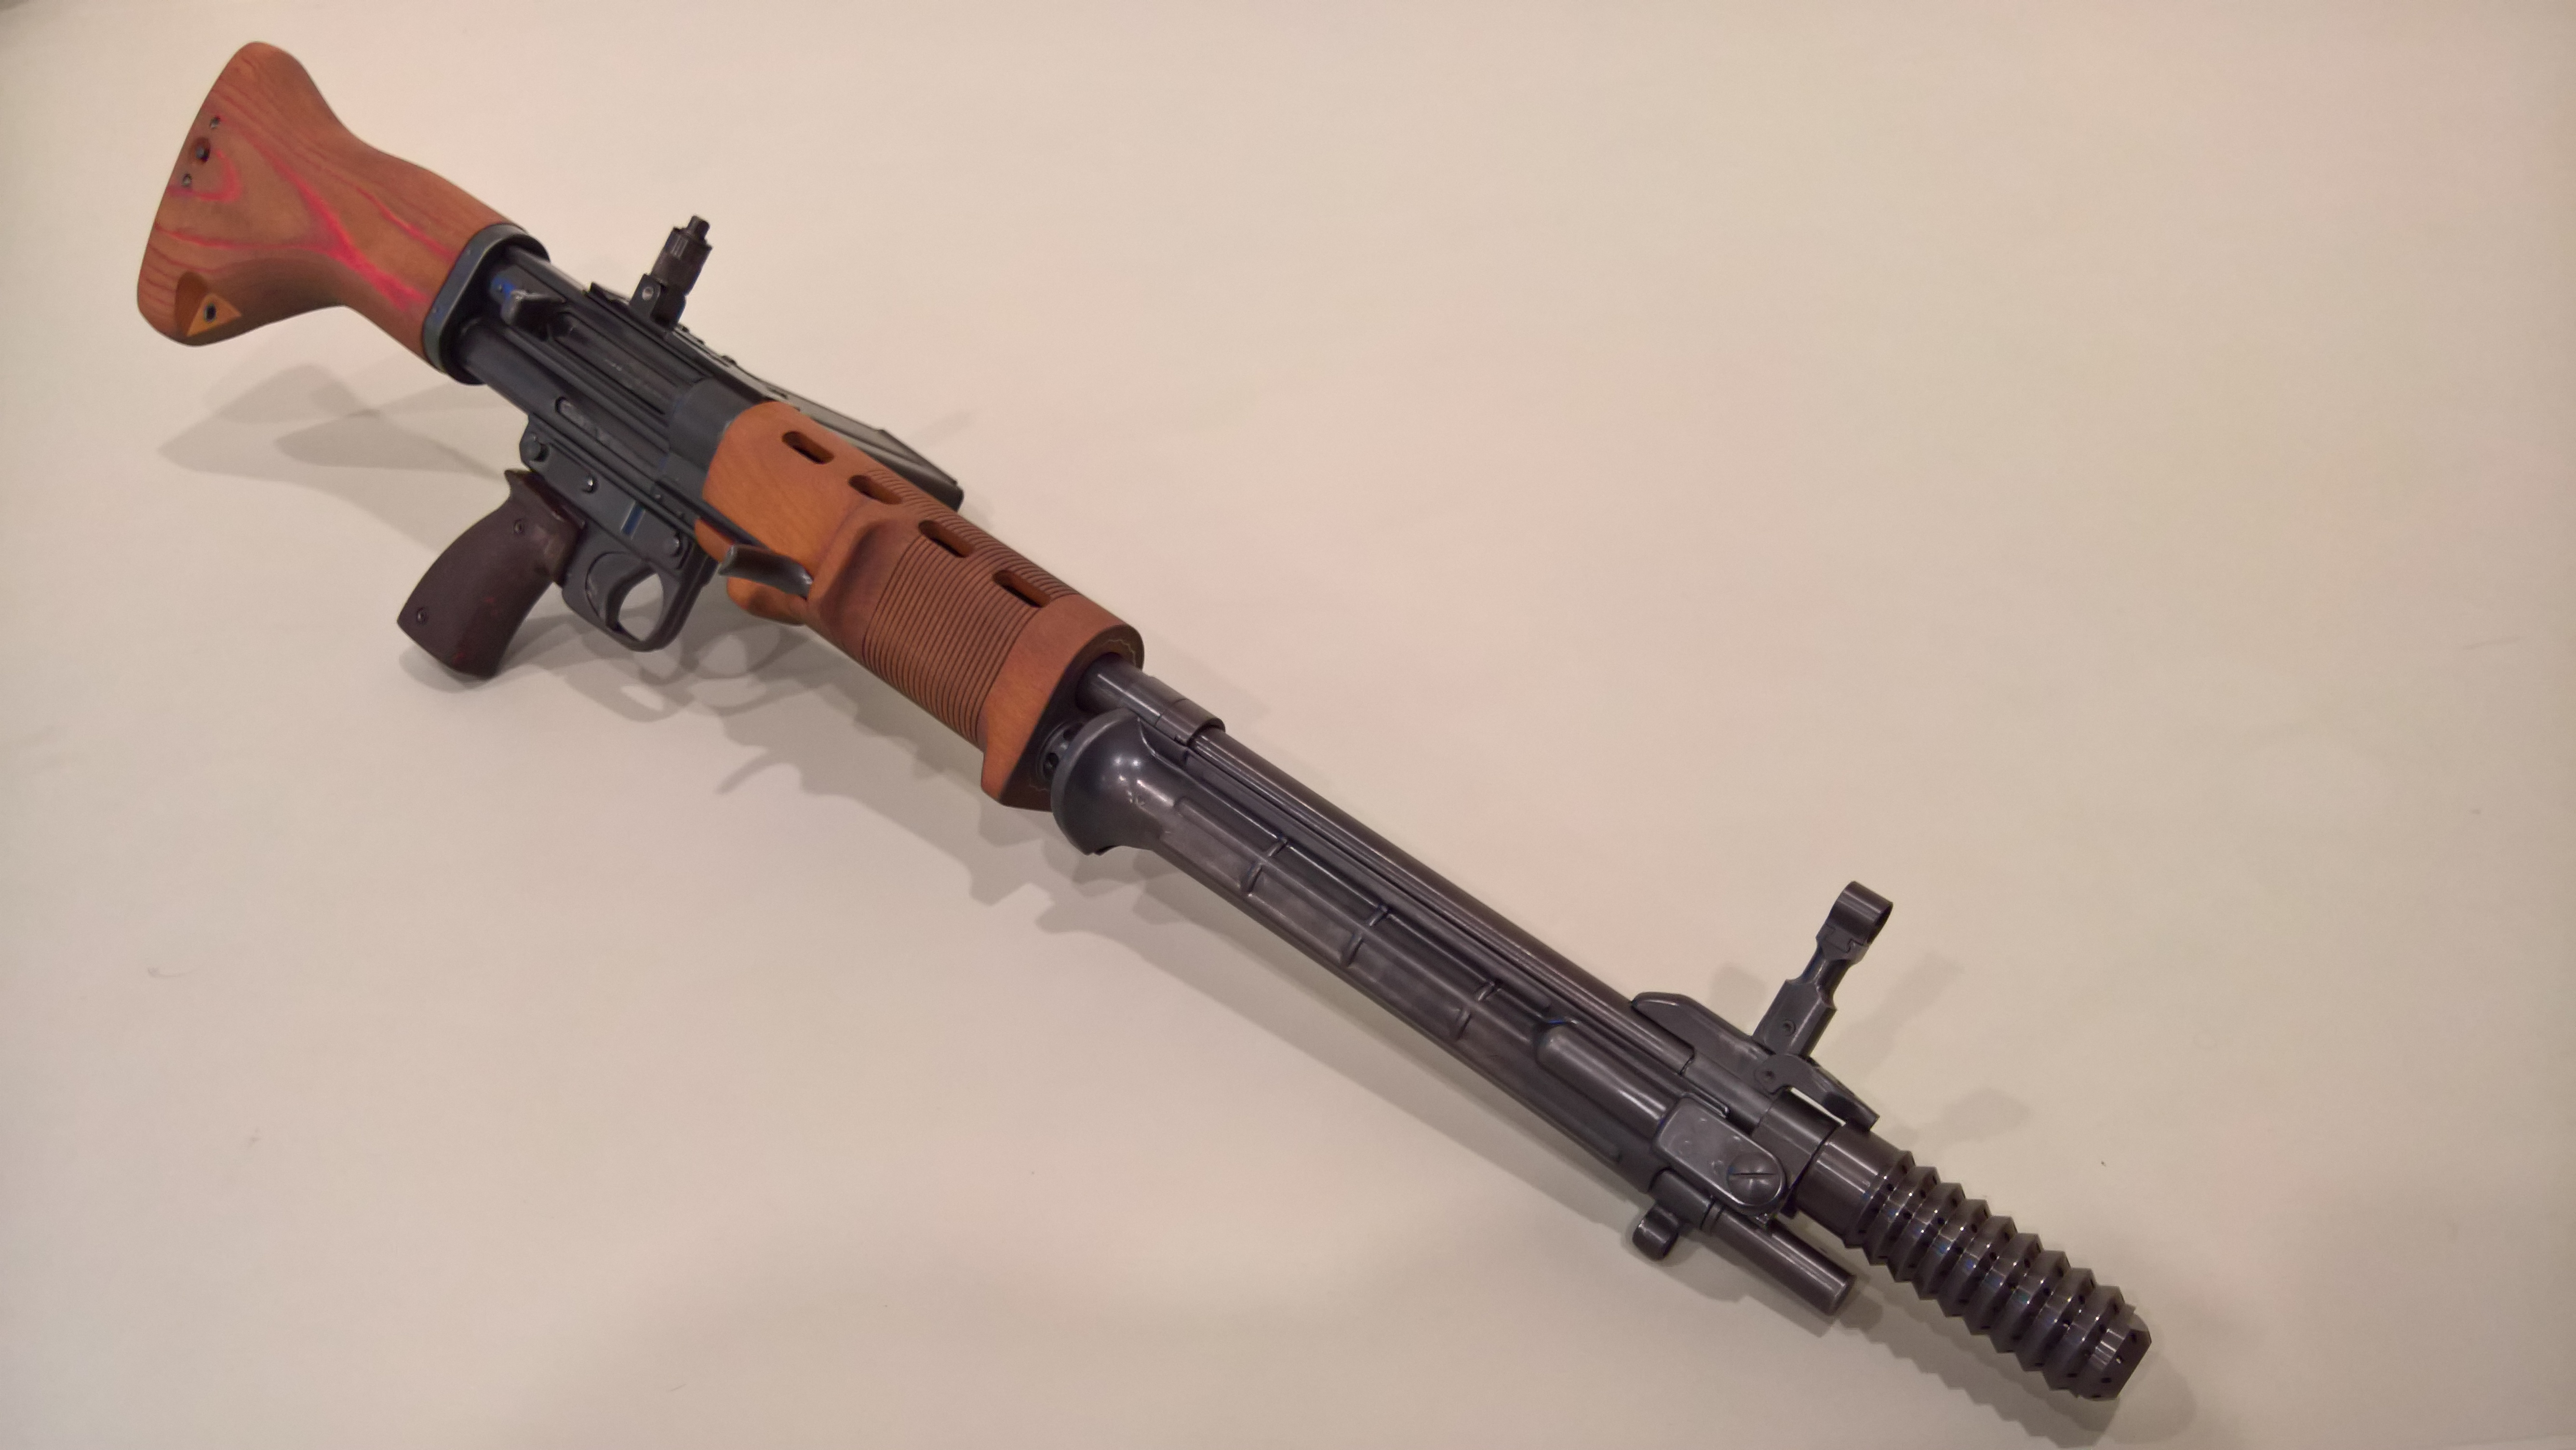 FG 42 (G) Pictures